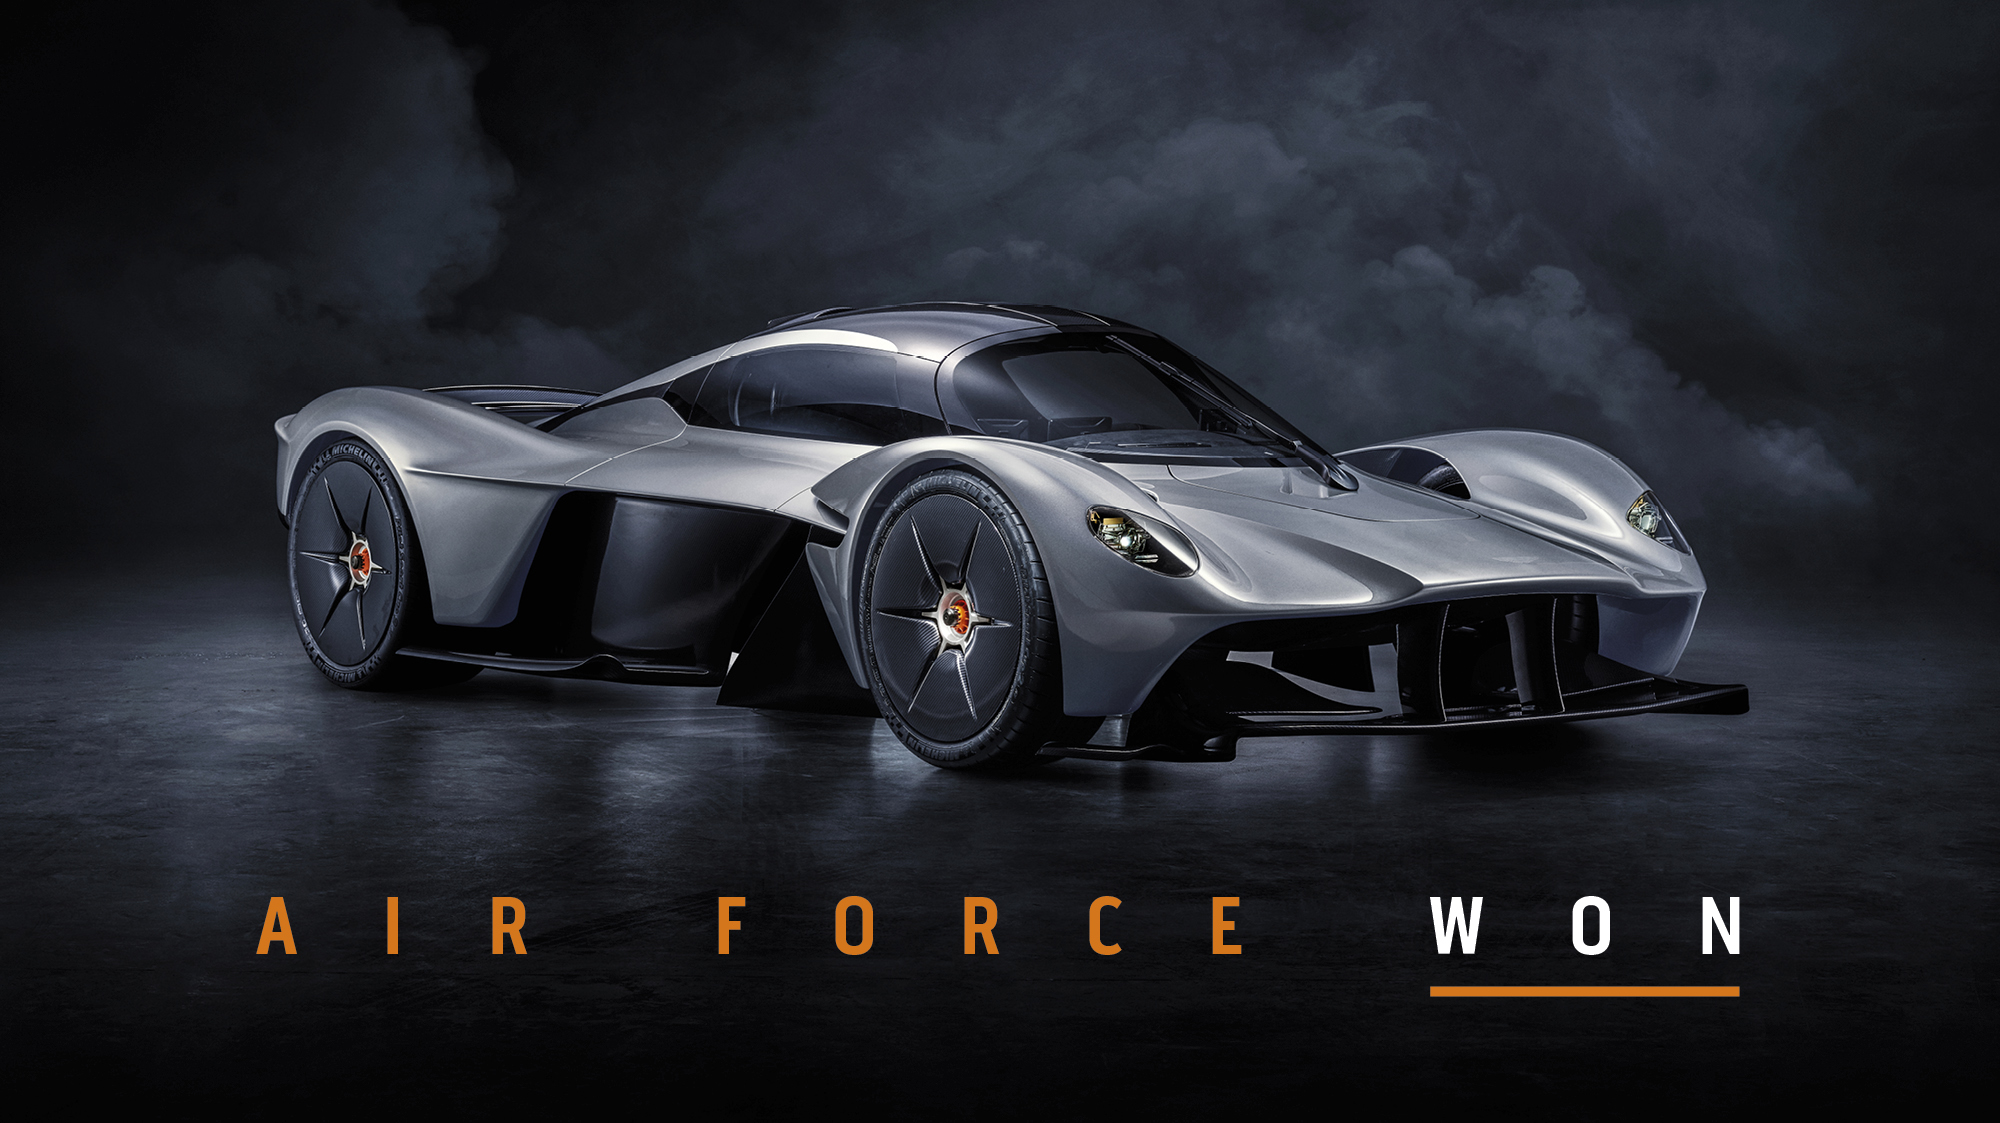 Aston Martin Valkyrie big read image